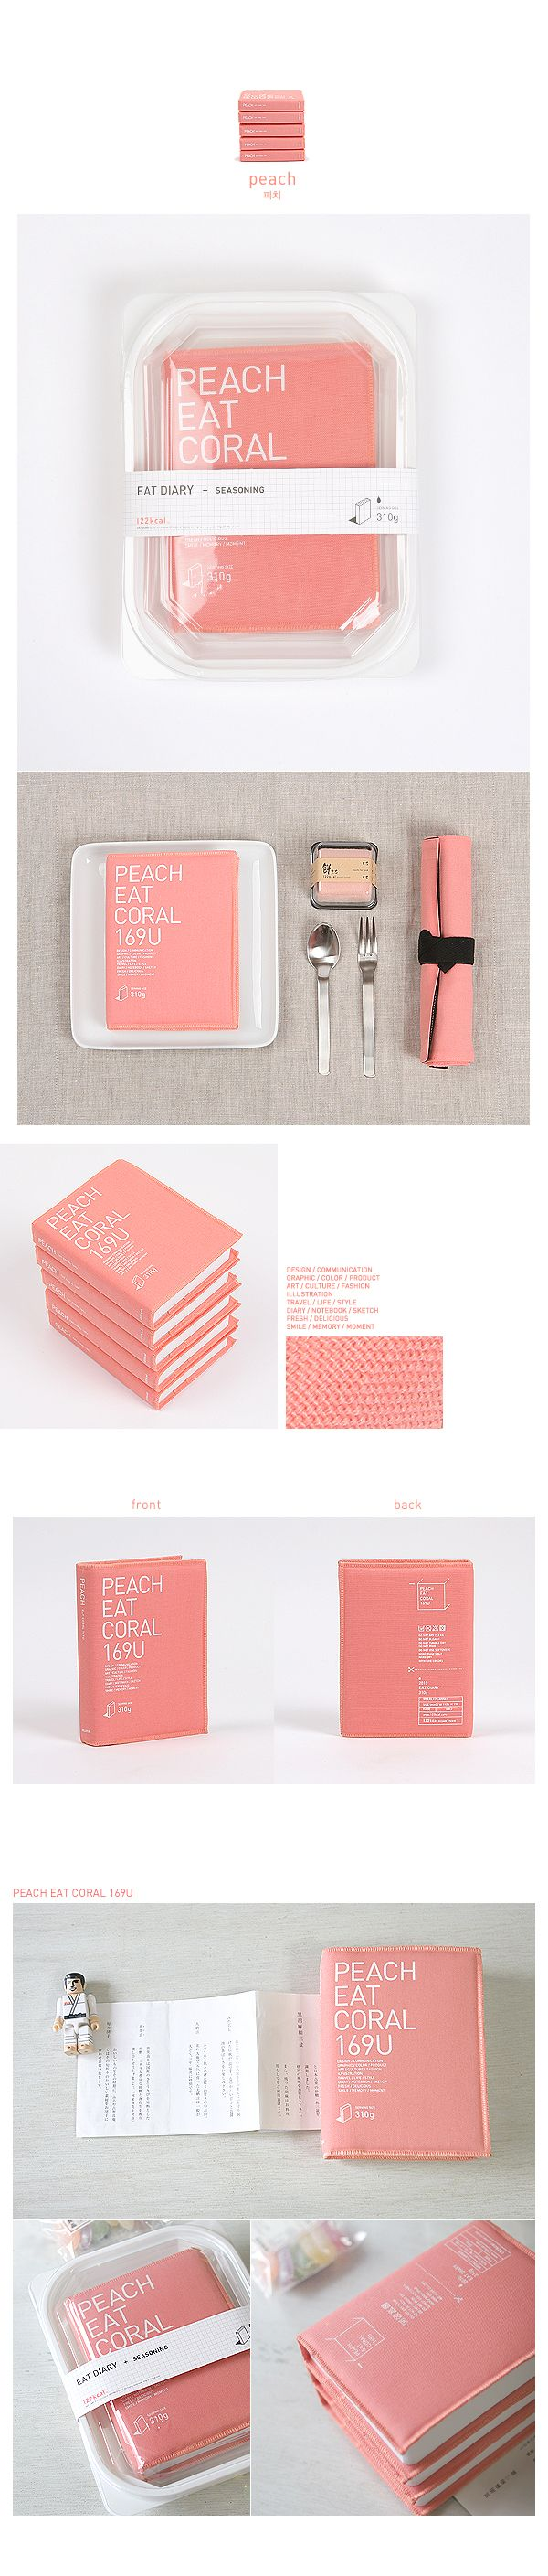 Agenda Eat Ver-2 - 12 Colores Detalle 5. Interesting coral color #packaging #branding exercise PD